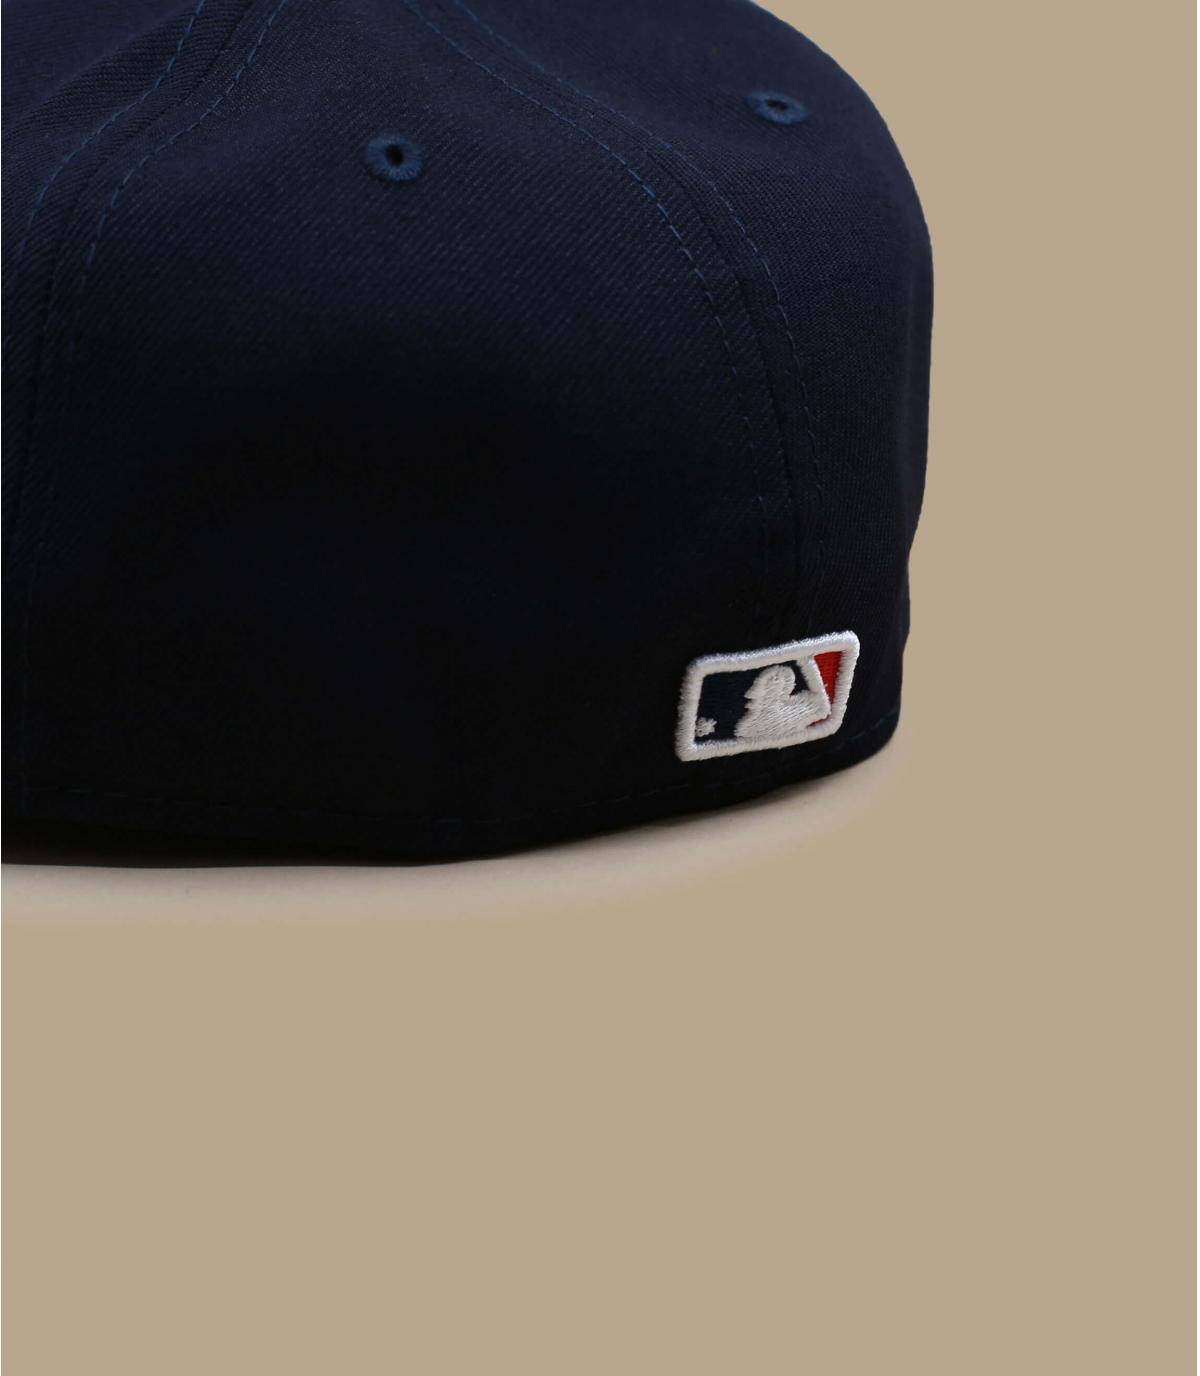 Détails MLB AC Perf 5950 Boston Red Sox - image 3